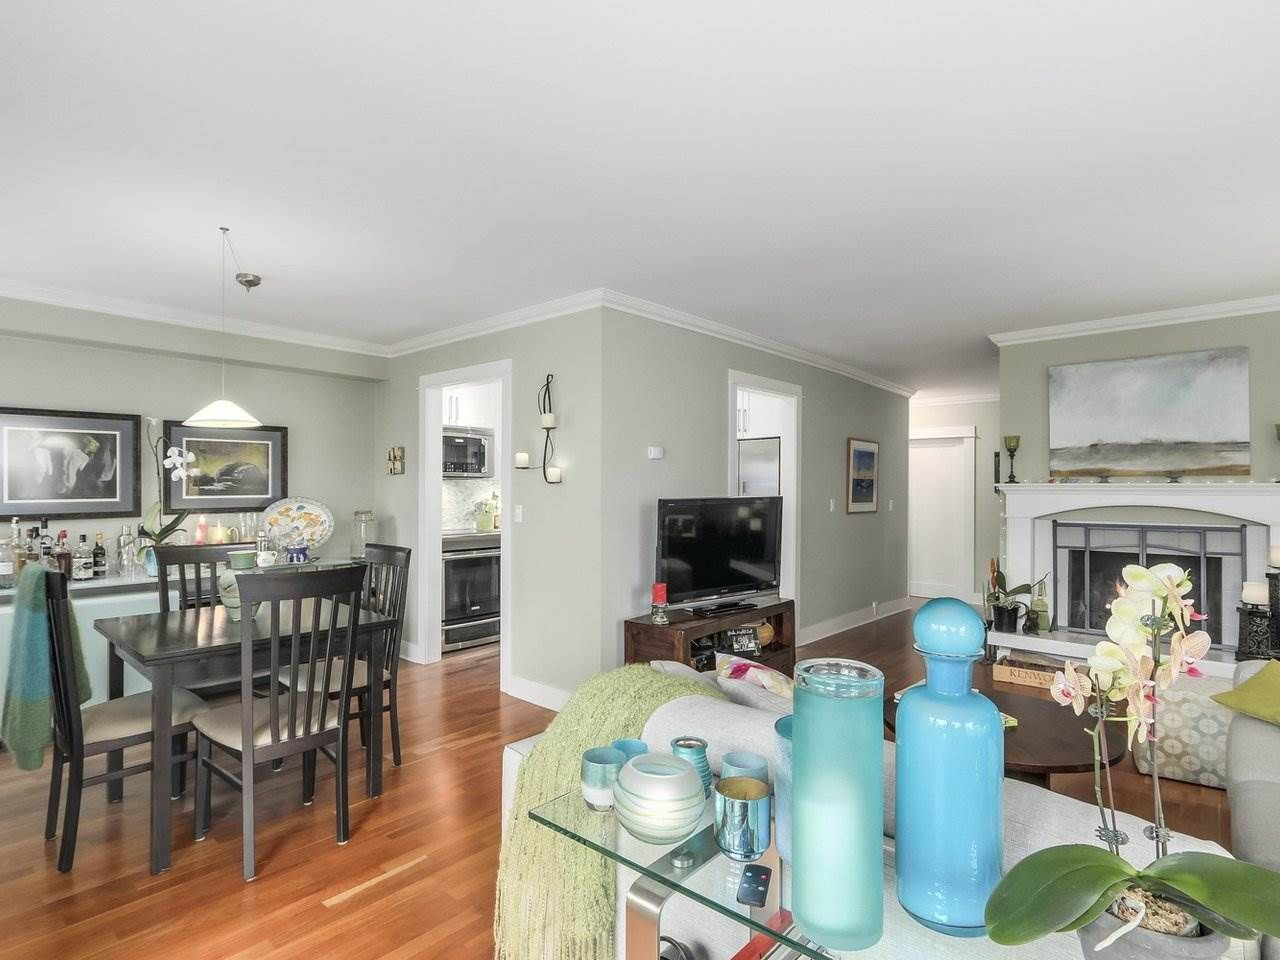 Main Photo: 102 1266 W 13TH AVENUE in Vancouver: Fairview VW Apartment/Condo for sale (Vancouver West)  : MLS®# R2245170